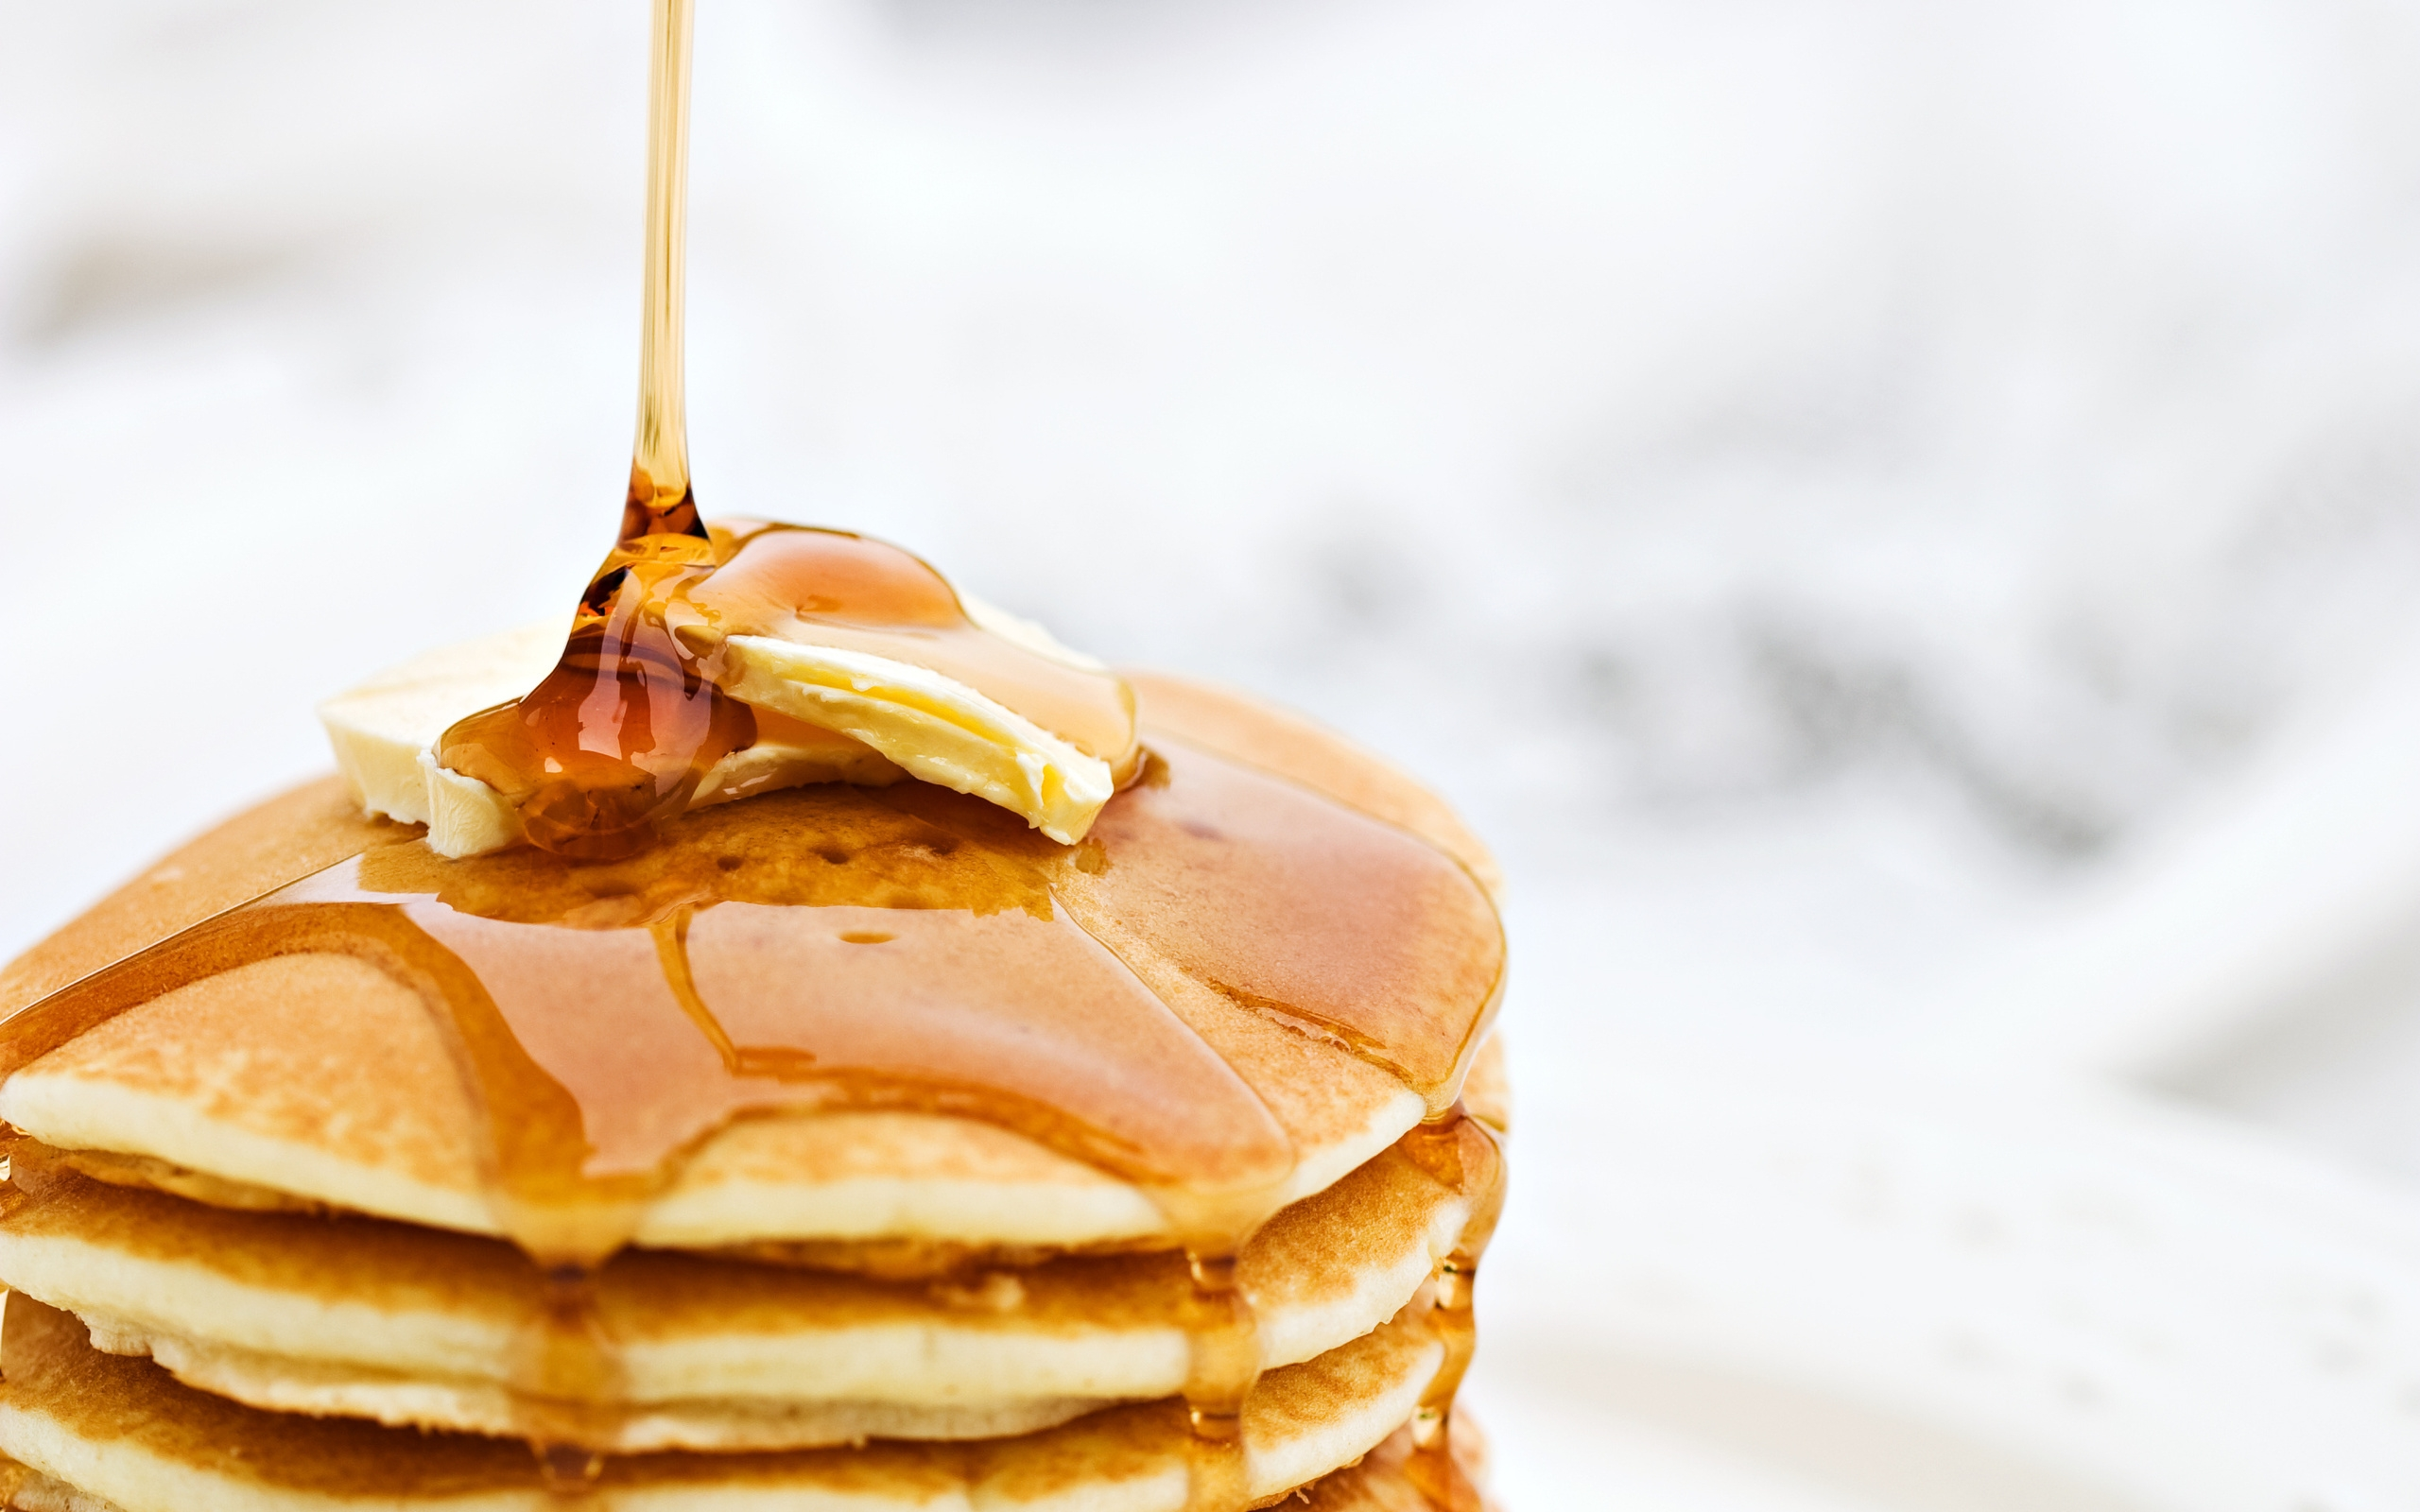 197 Pancake HD Wallpapers Background Images 2560x1600